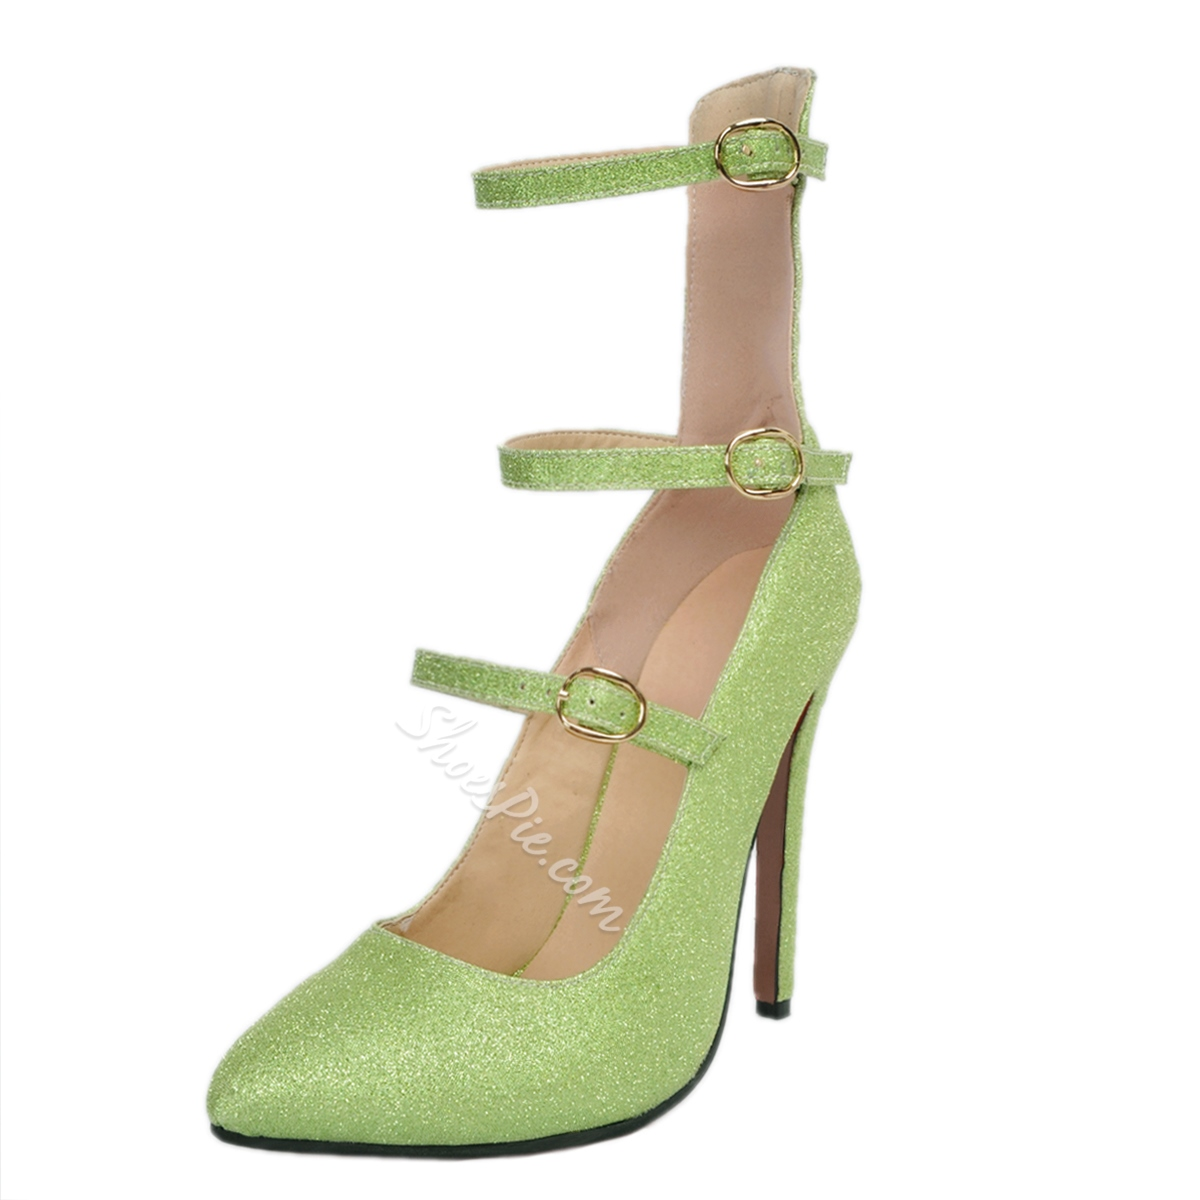 Shoespie Chic Green Stiletto Heels